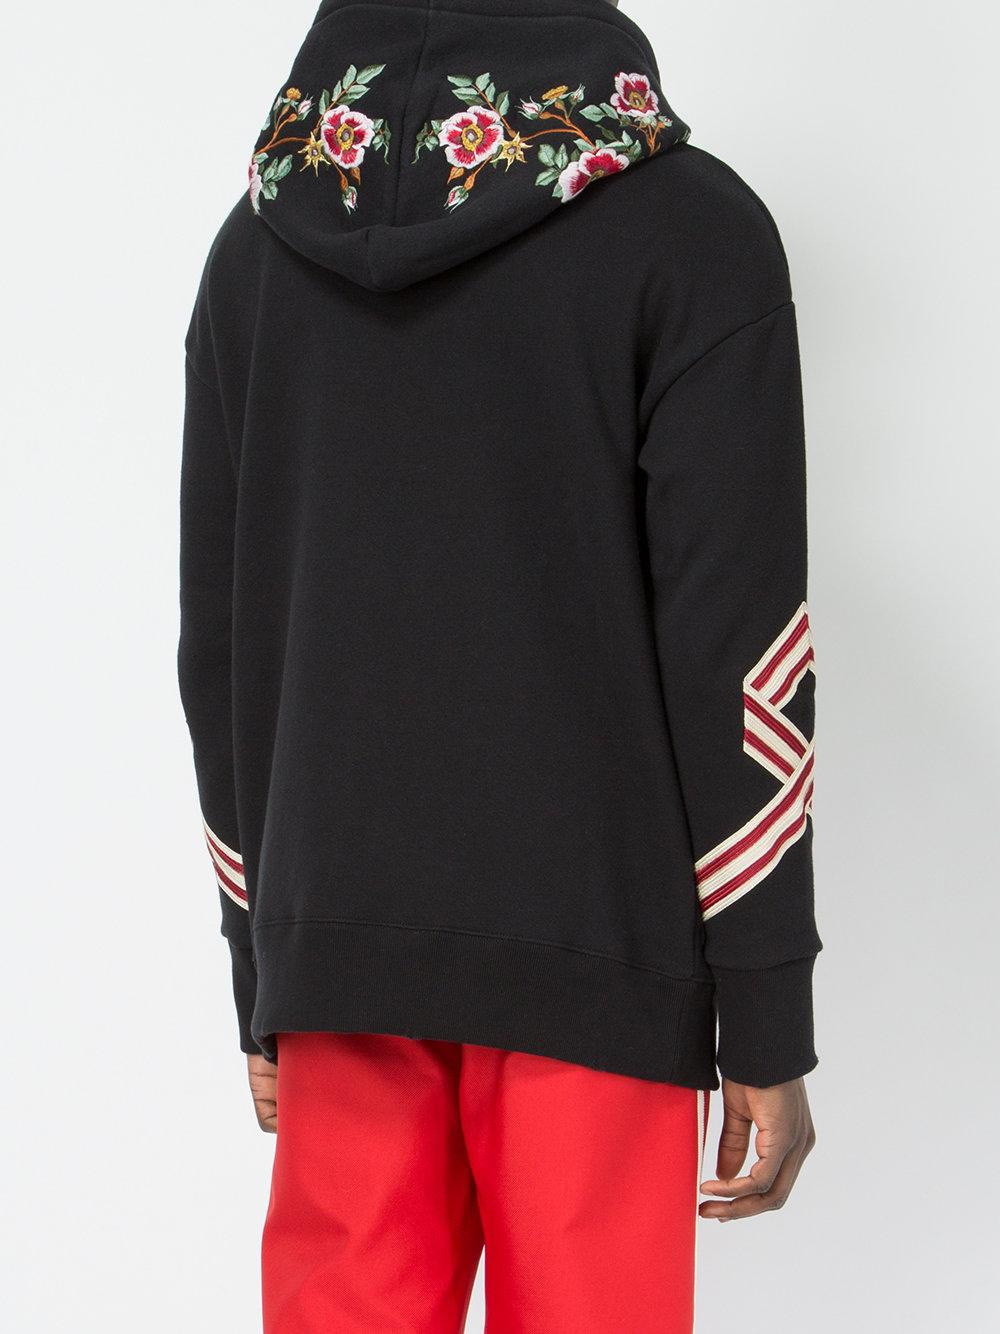 Gucci Tiger Embroidered Hooded Sweatshirt In Black For Men